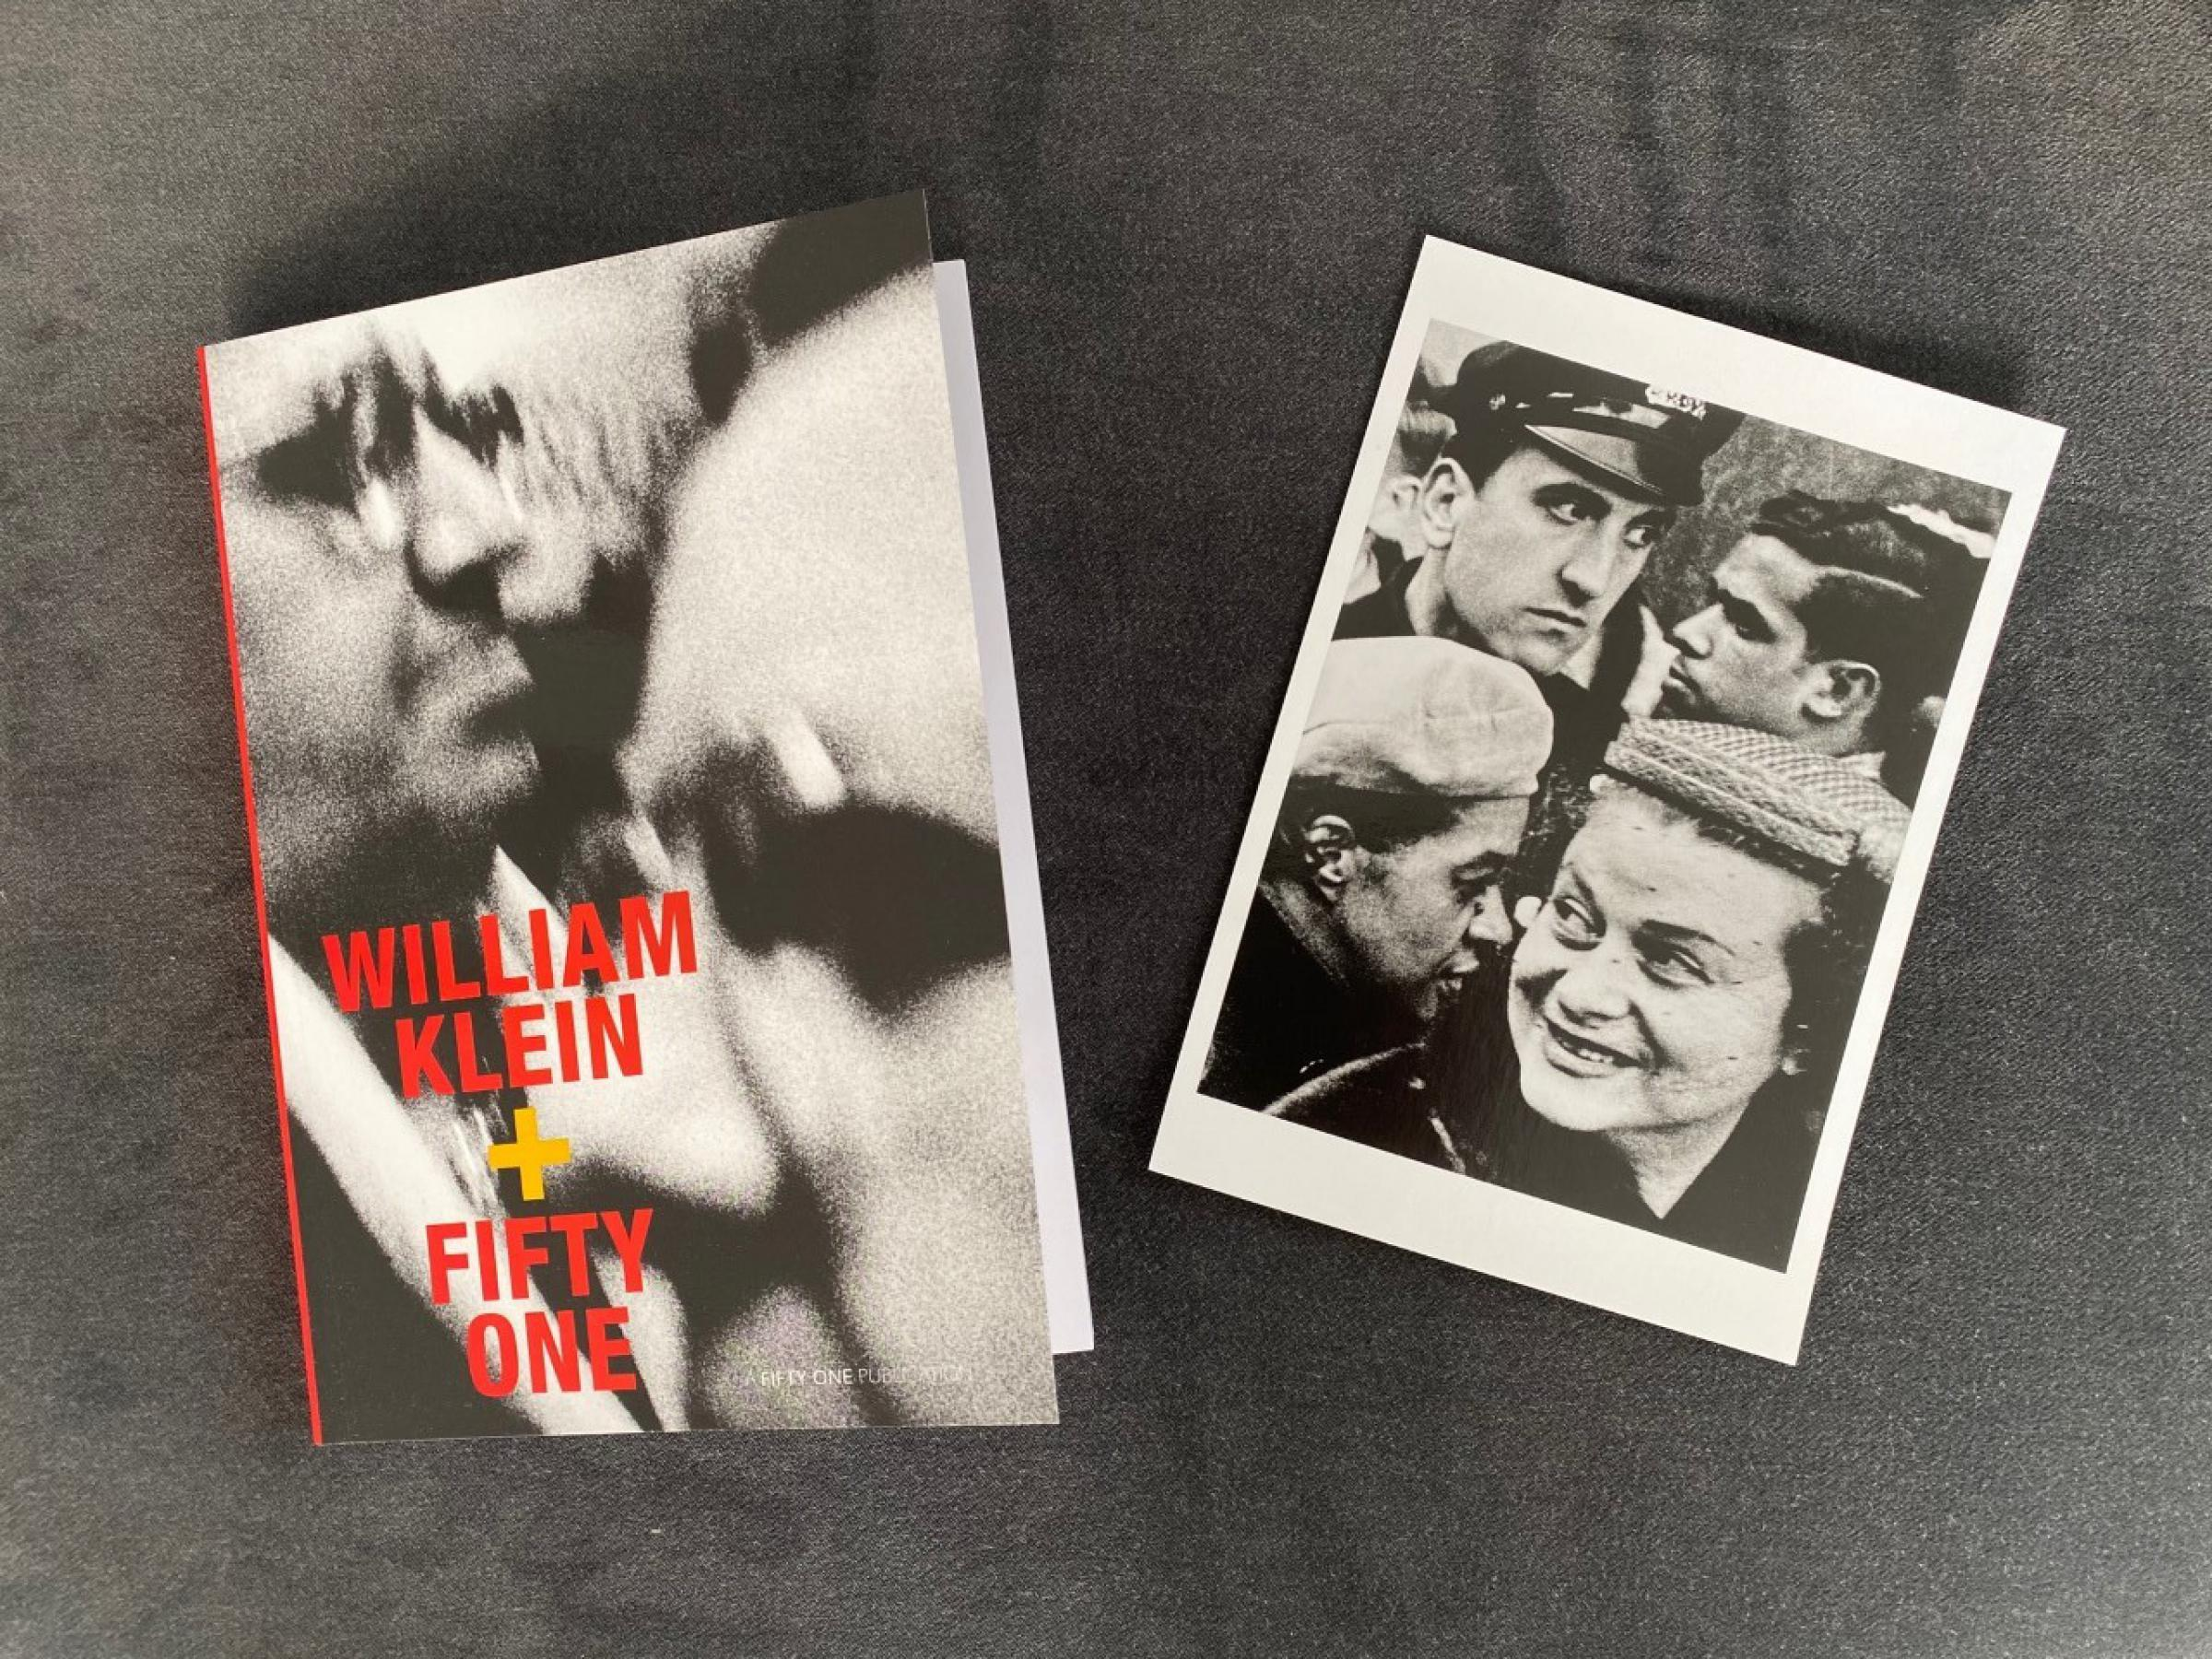 William Klein: WILLIAM KLEIN + FIFTY ONE - SPECIAL EDITION